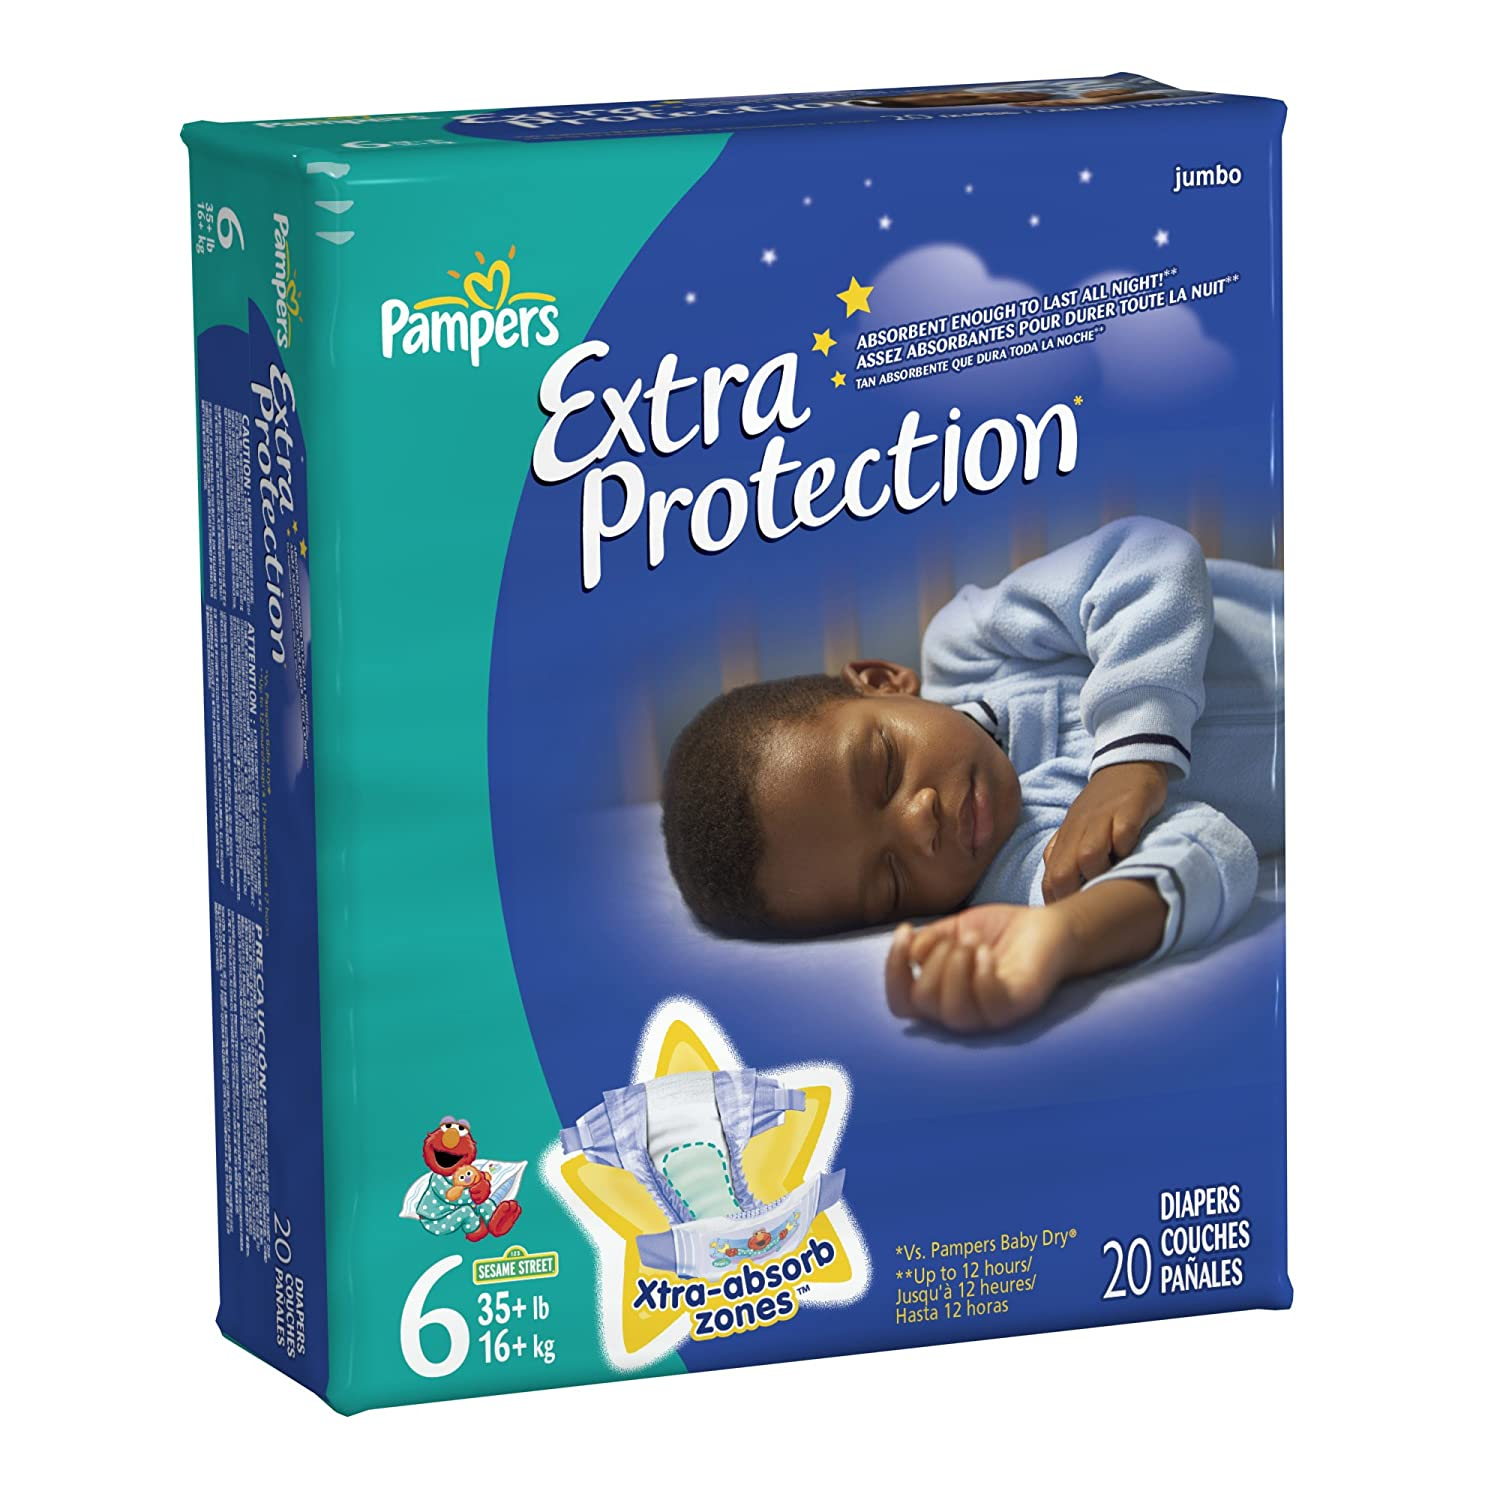 Amazon.com: Pampers Extra Protection Size 6 Diapers Jumbo Pack 20 Count (Pack of 4): Health & Personal Care